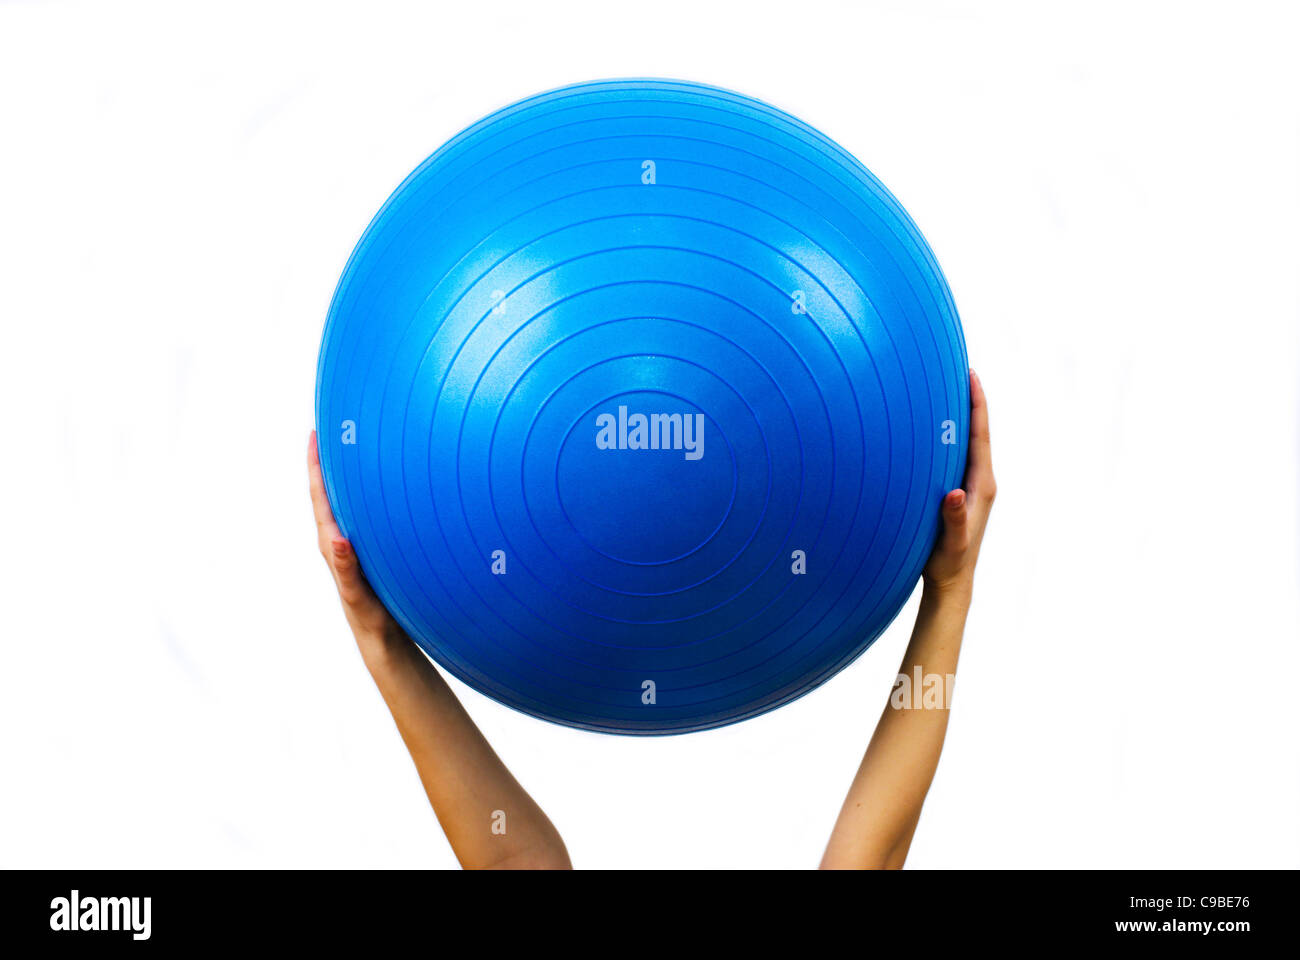 Blue fit ball in the hand - Stock Image